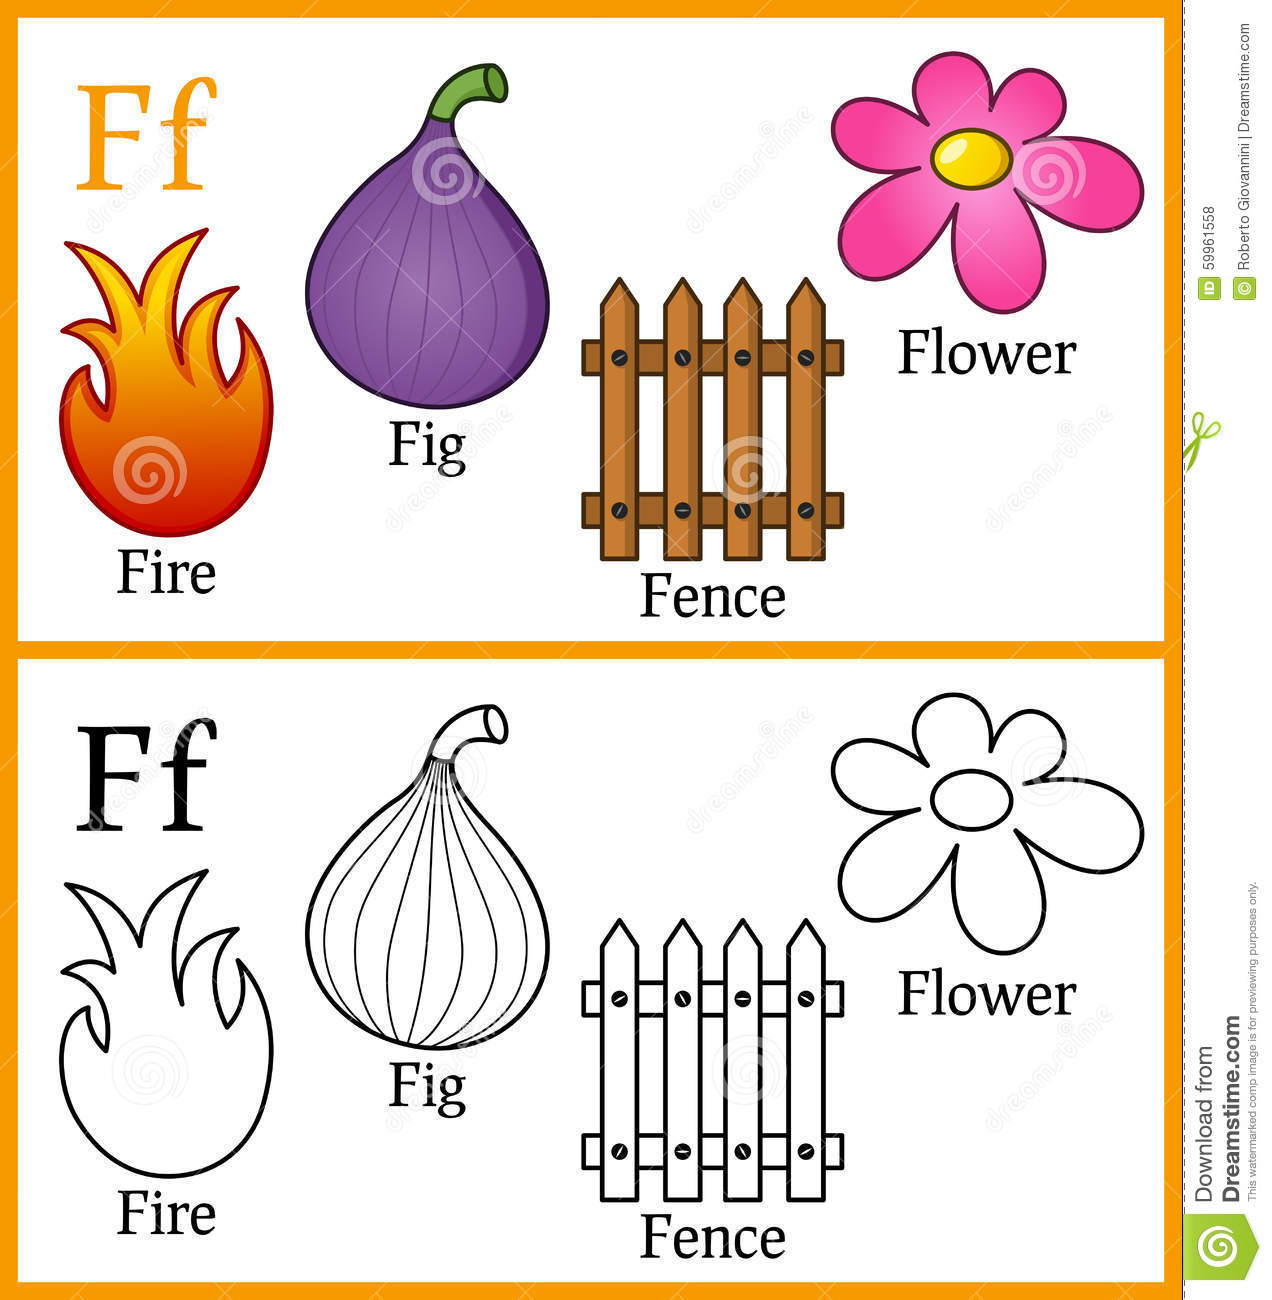 coloring book for children alphabet f royalty free stock photos - Coloring Book For Children